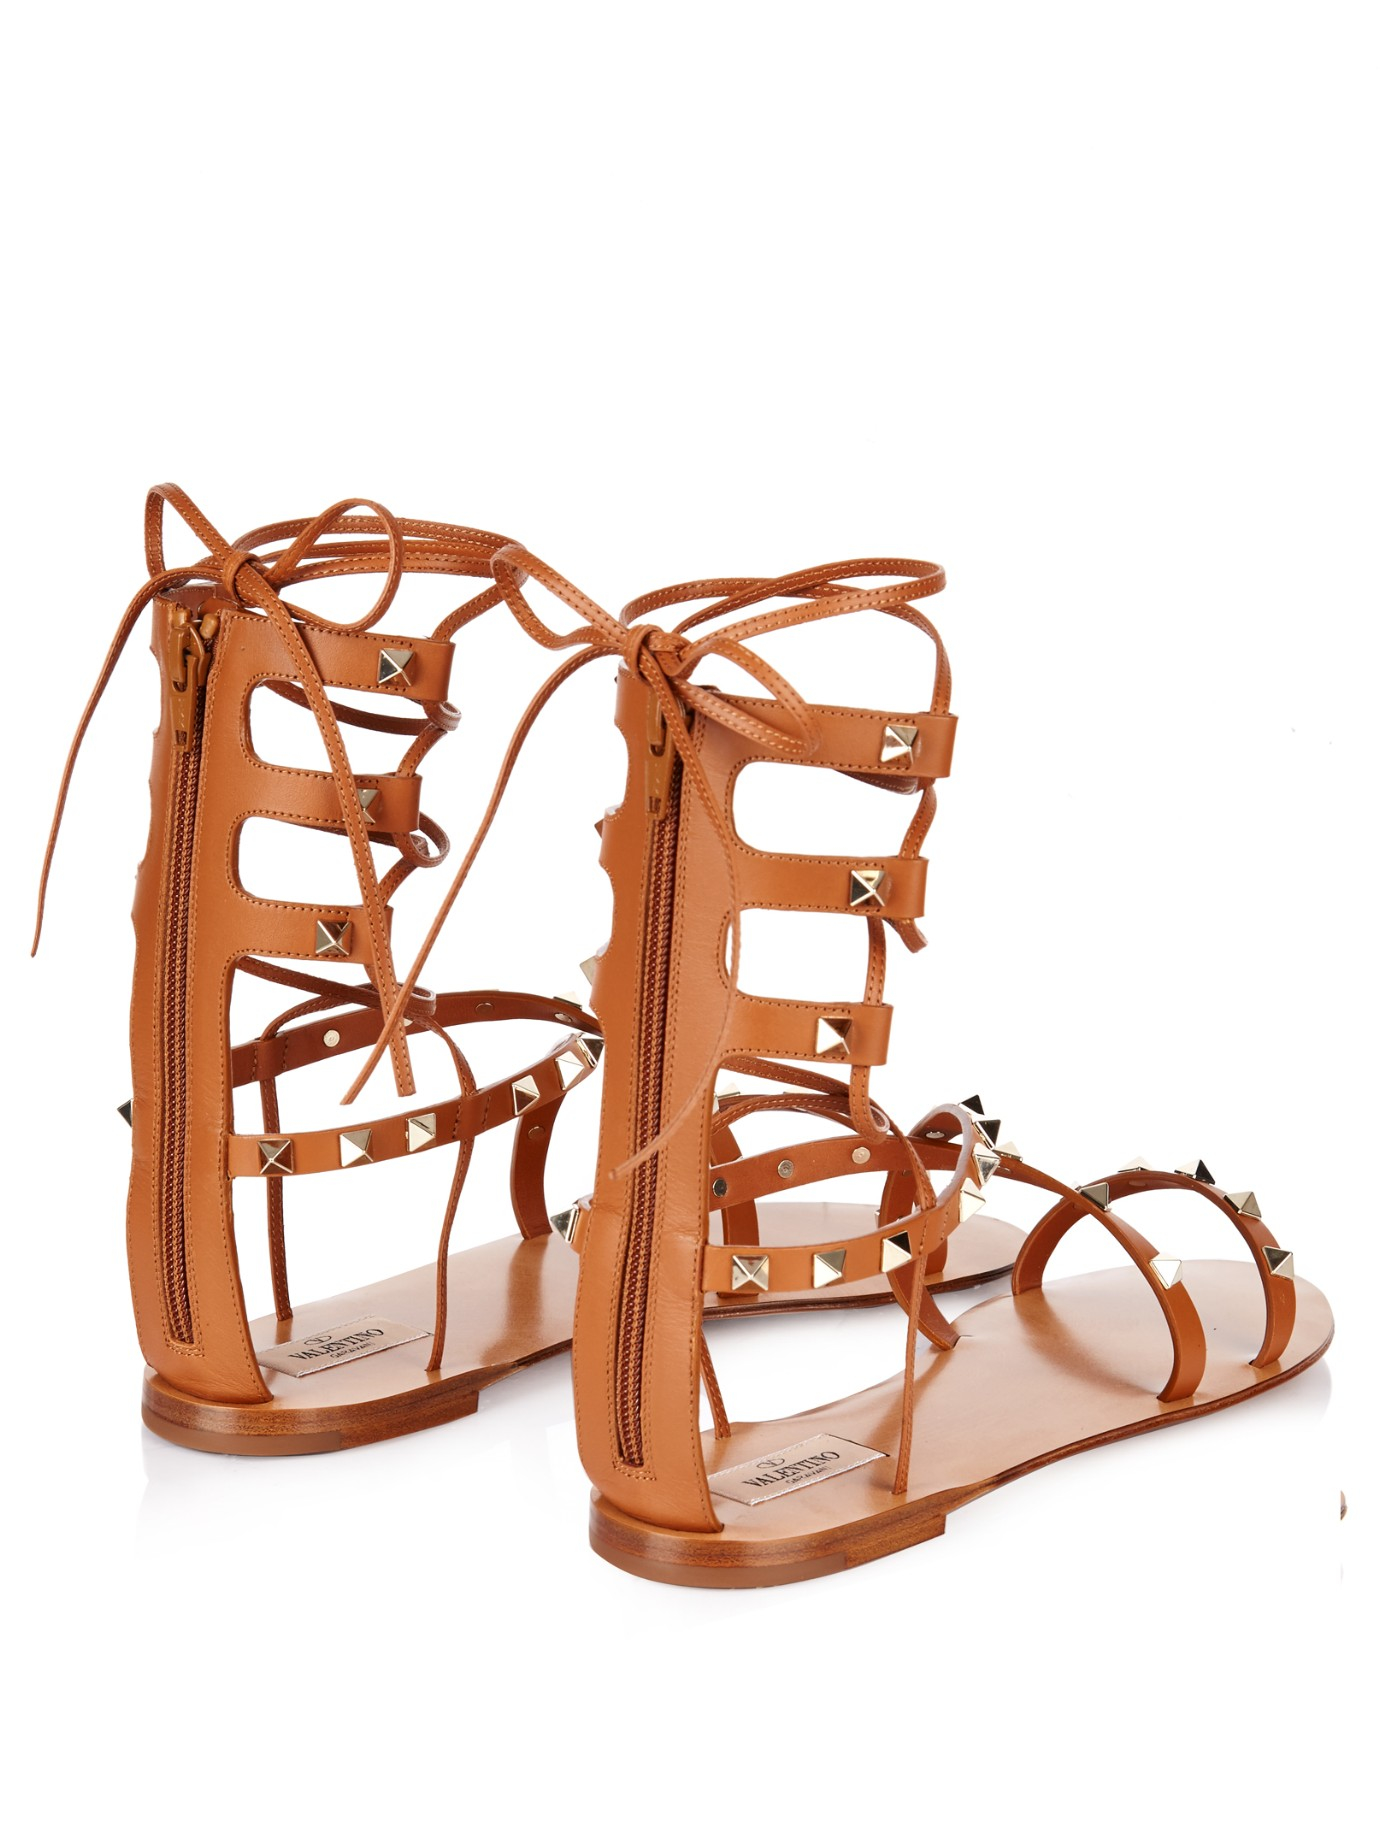 a66a7285bd3 Lyst - Valentino Rockstud Leather Gladiator Sandals in Brown